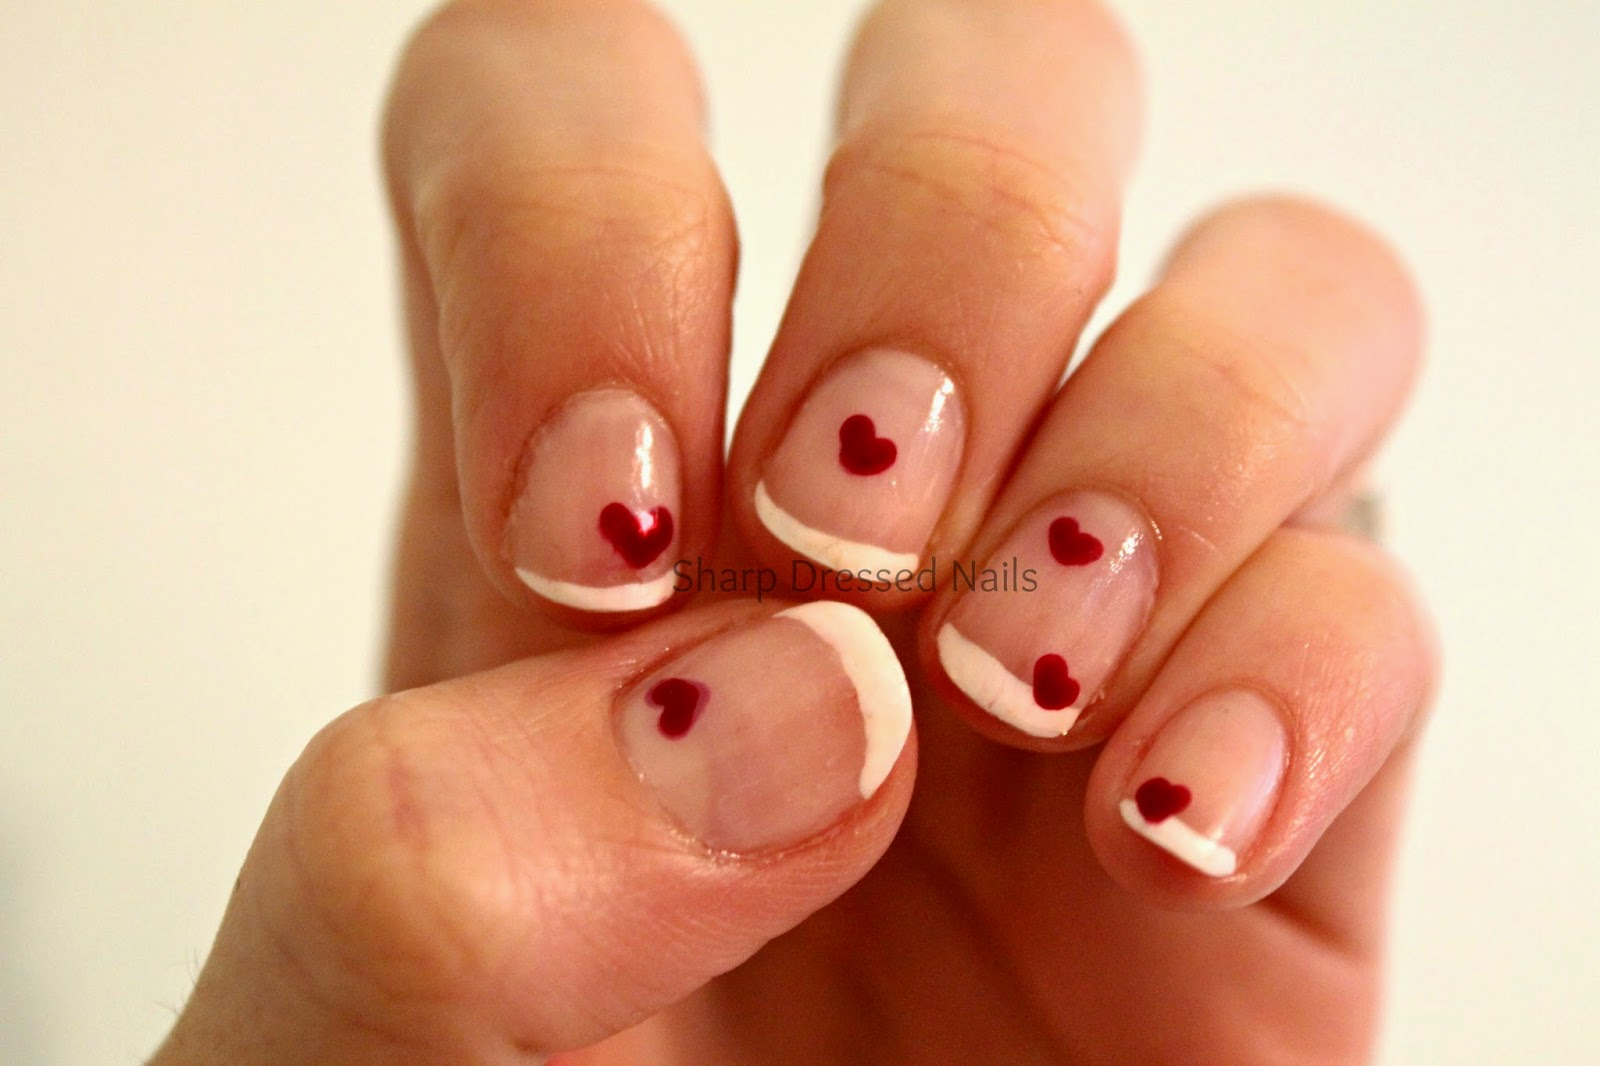 Sharp Dressed Nails: French Manicure with Hearts-- Valentine Nails 2015